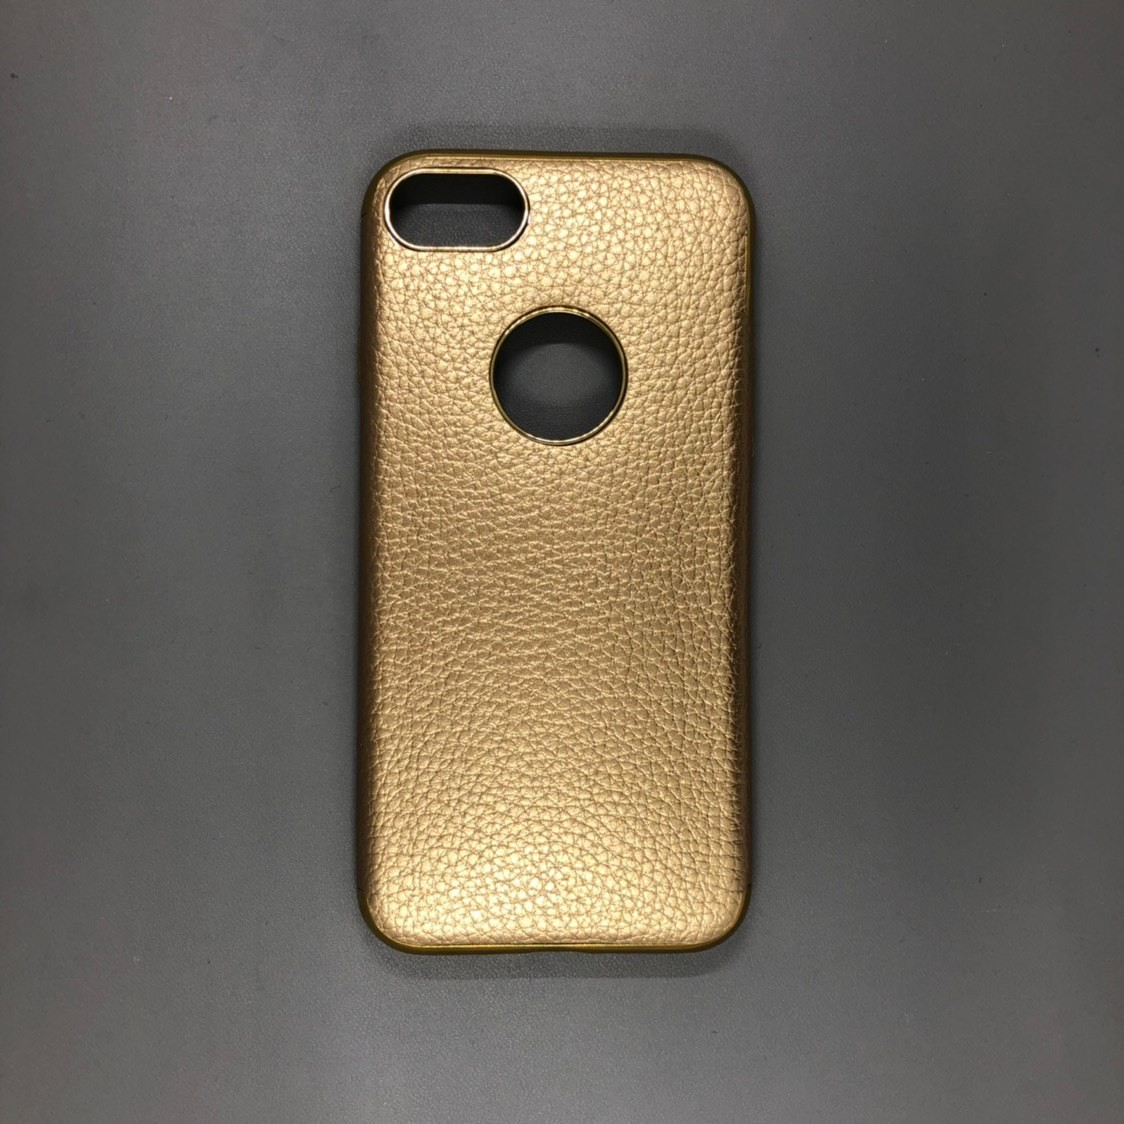 iPhone 7 Golden